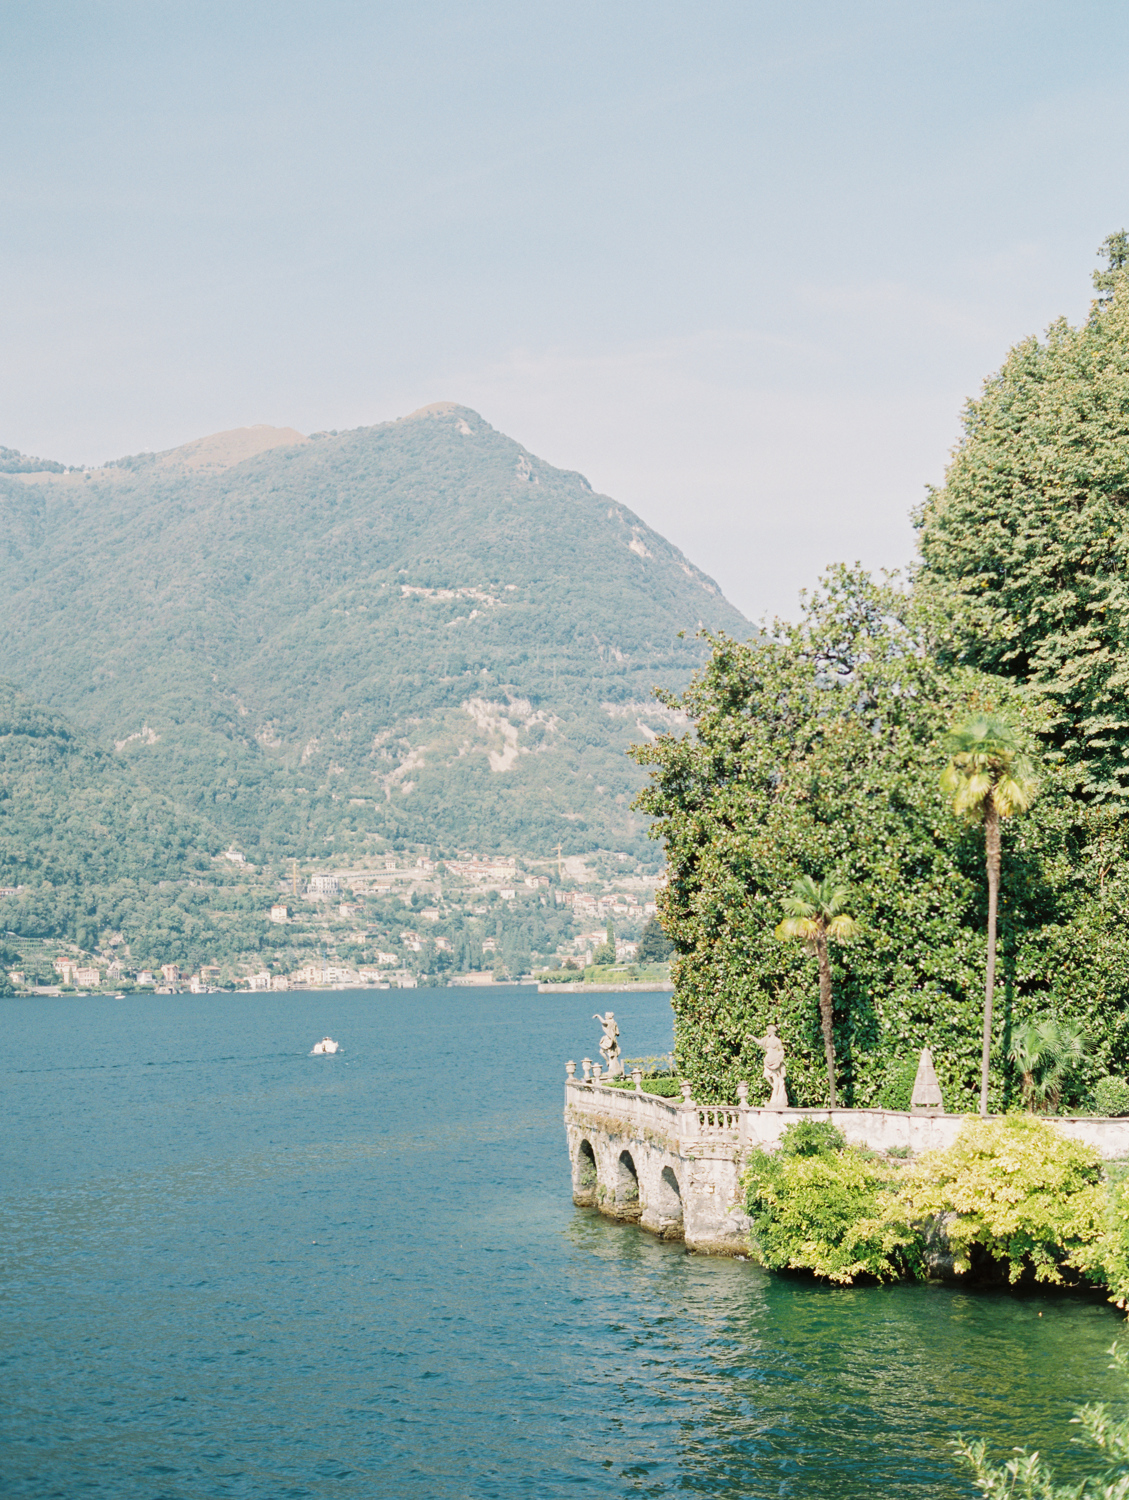 Photo of lago di Como landscape, mountain, boat